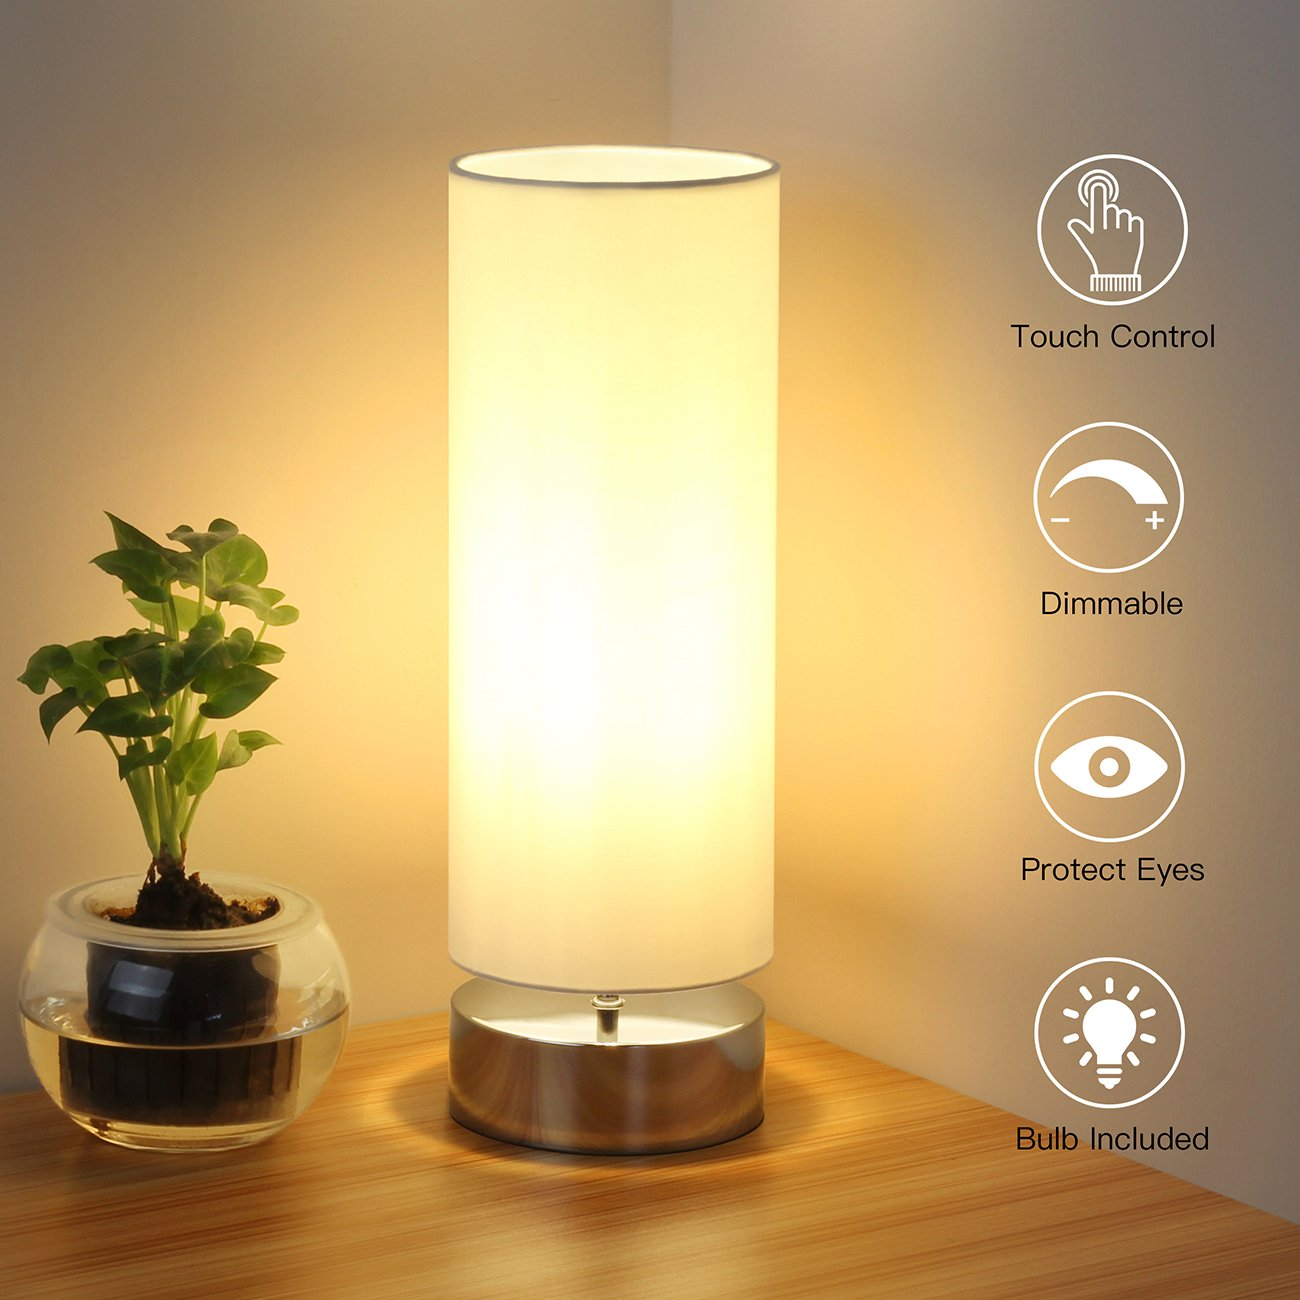 Touch Control Table Lamp Bedside Minimalist Desk Lamp Modern Accent Lamp Dimmable Touch Light with Cylinder Lamp Shade Night Light Nightstand Lamp for Bedroom Living Room Kitchen, E26 Bulb Included by Seaside village (Image #2)